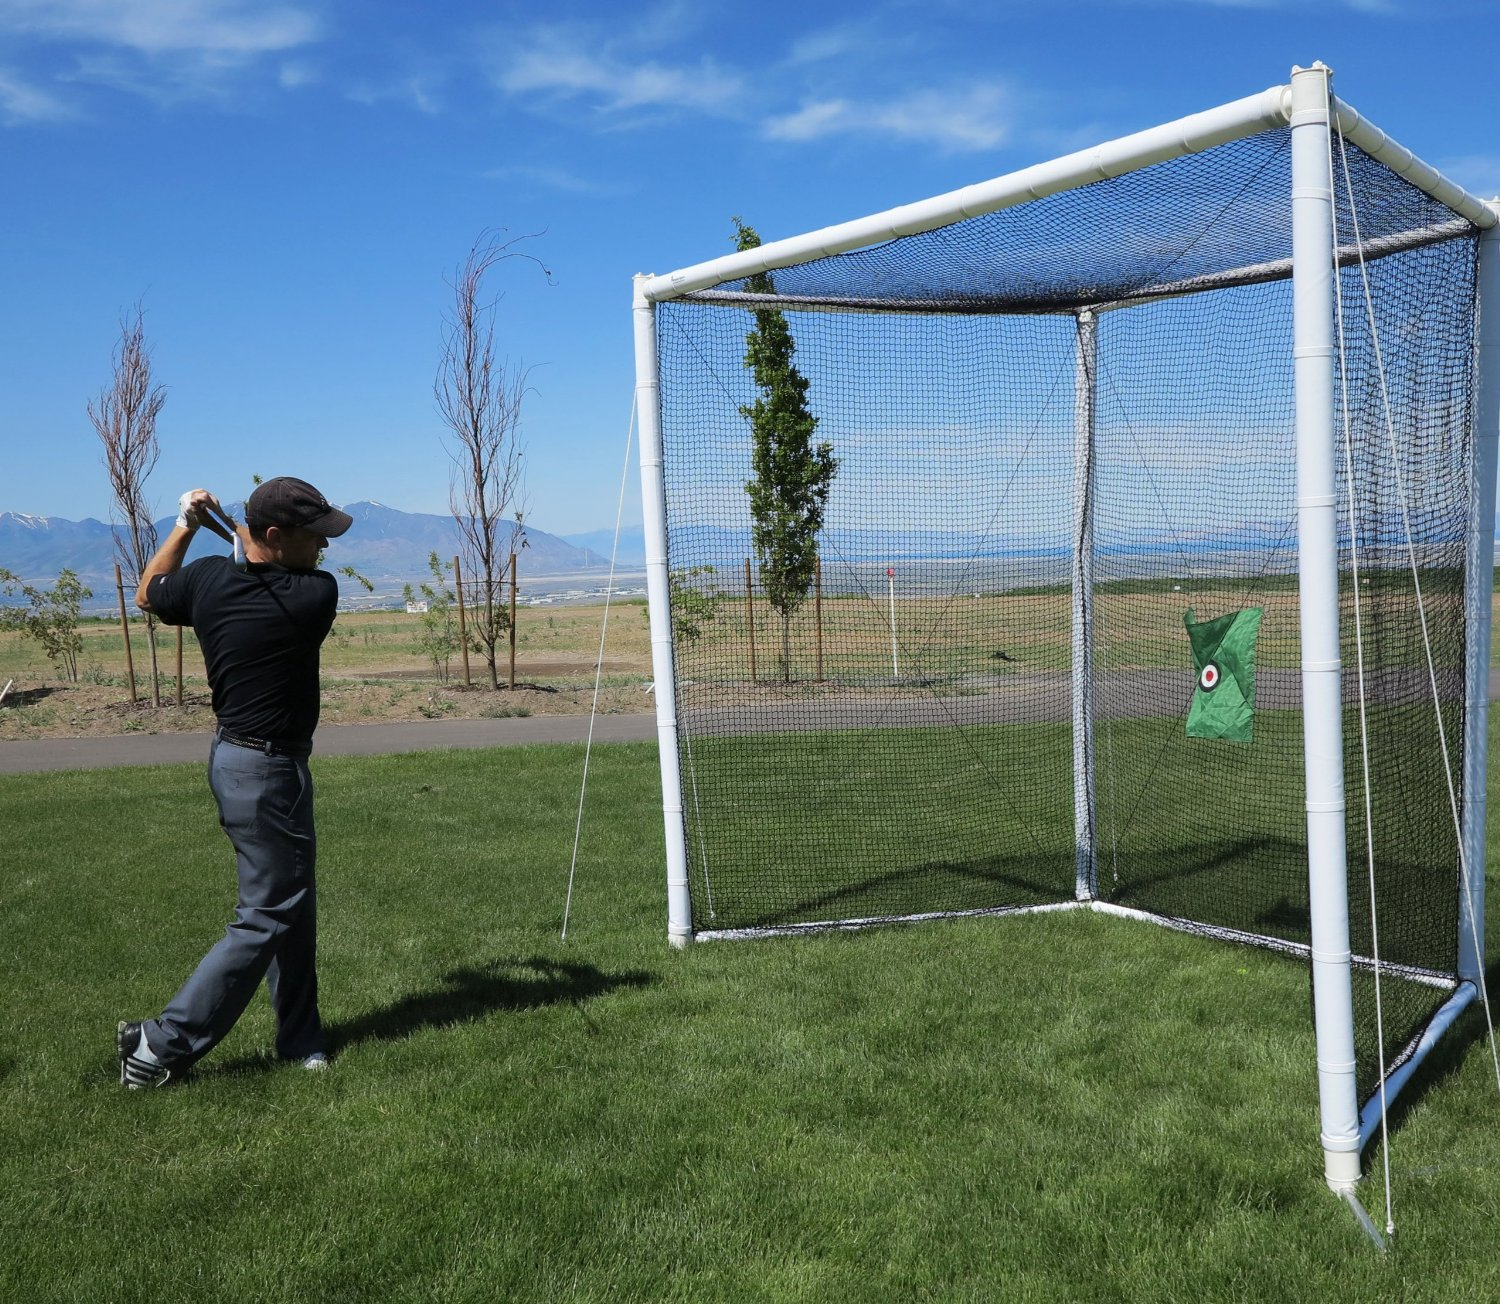 Airgoal Professional Golf Practice Driving Nets